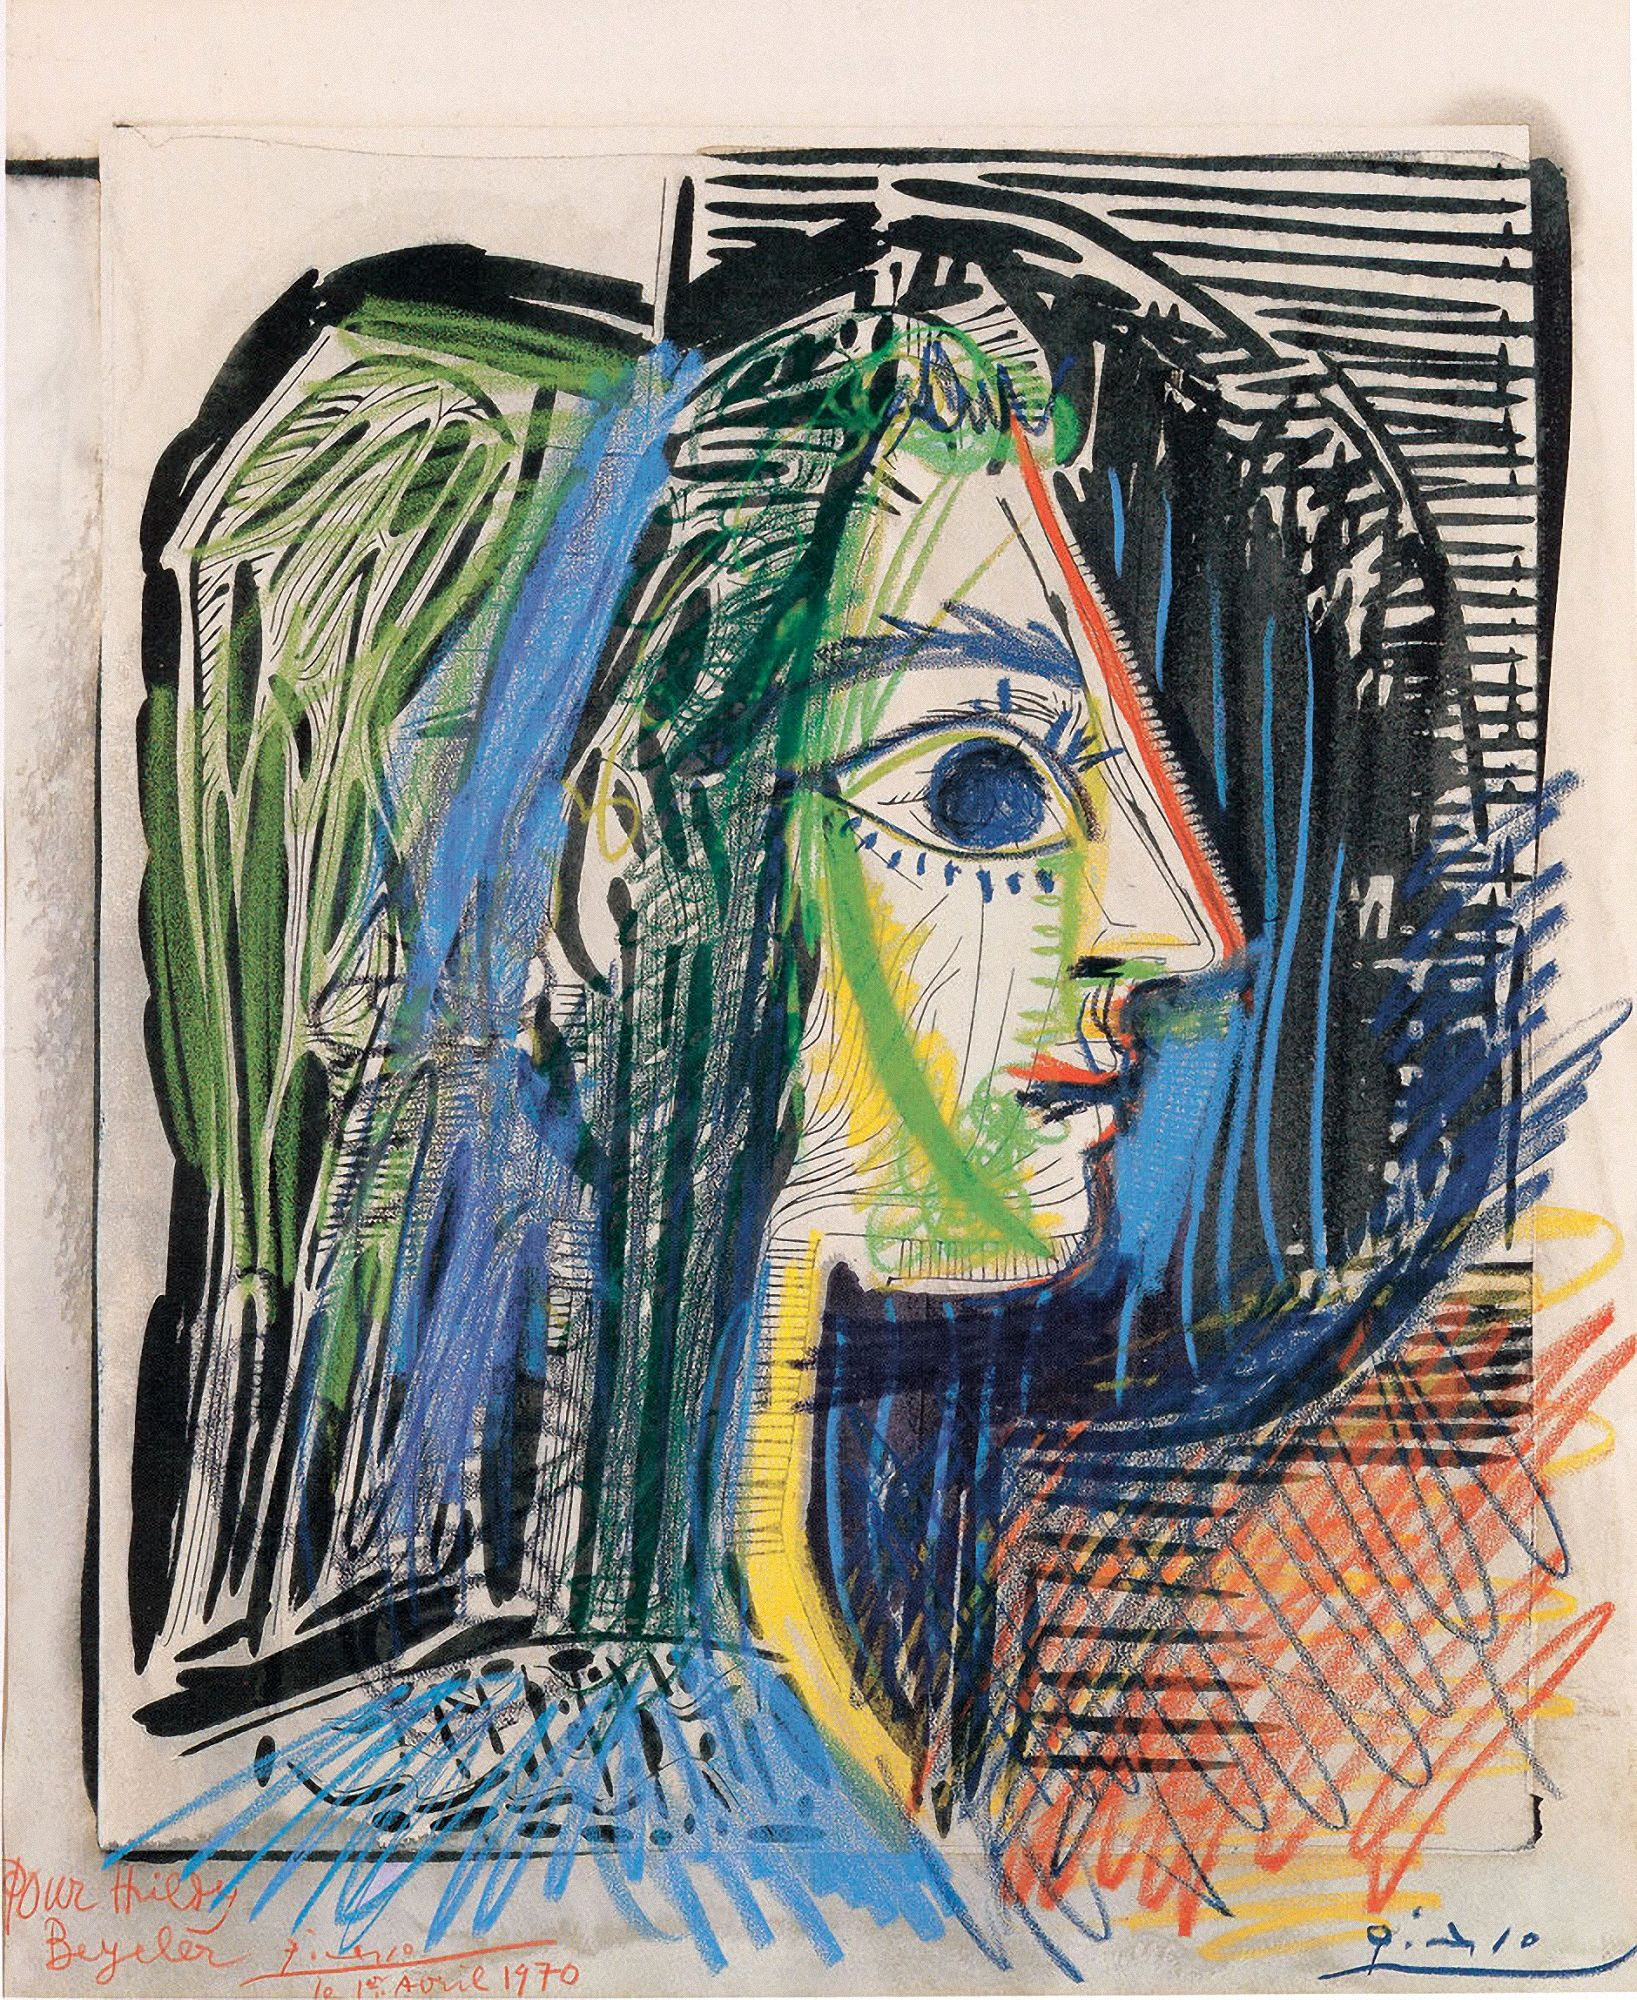 Pablo Picasso-Profile of a Woman-1969 Poster